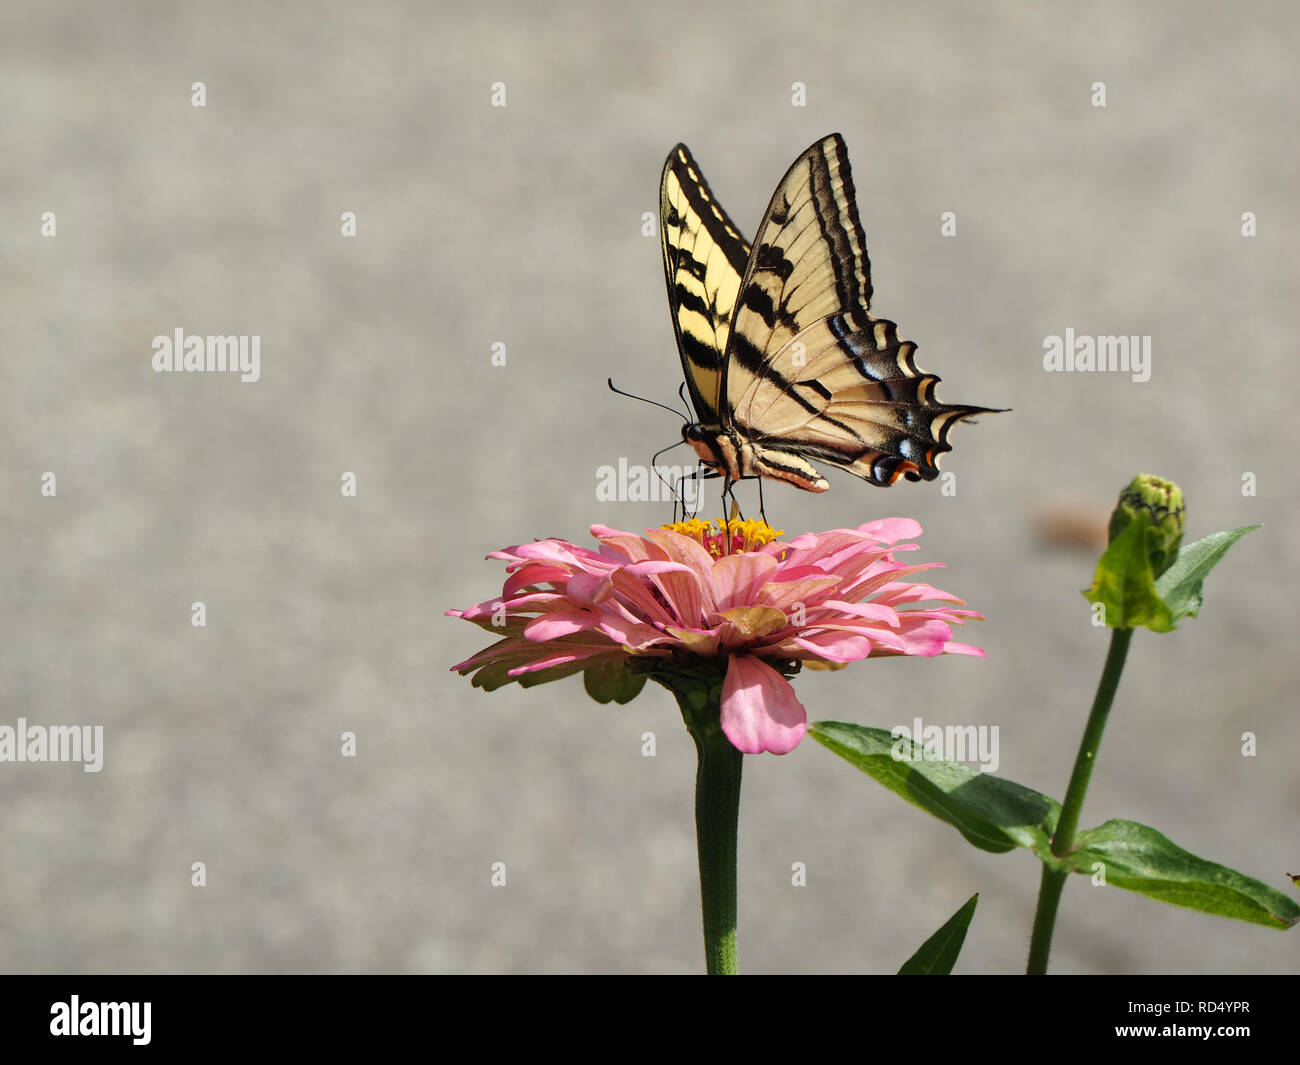 Pretty yellow and black swallowtail butterfly on a pink flower - Stock Image